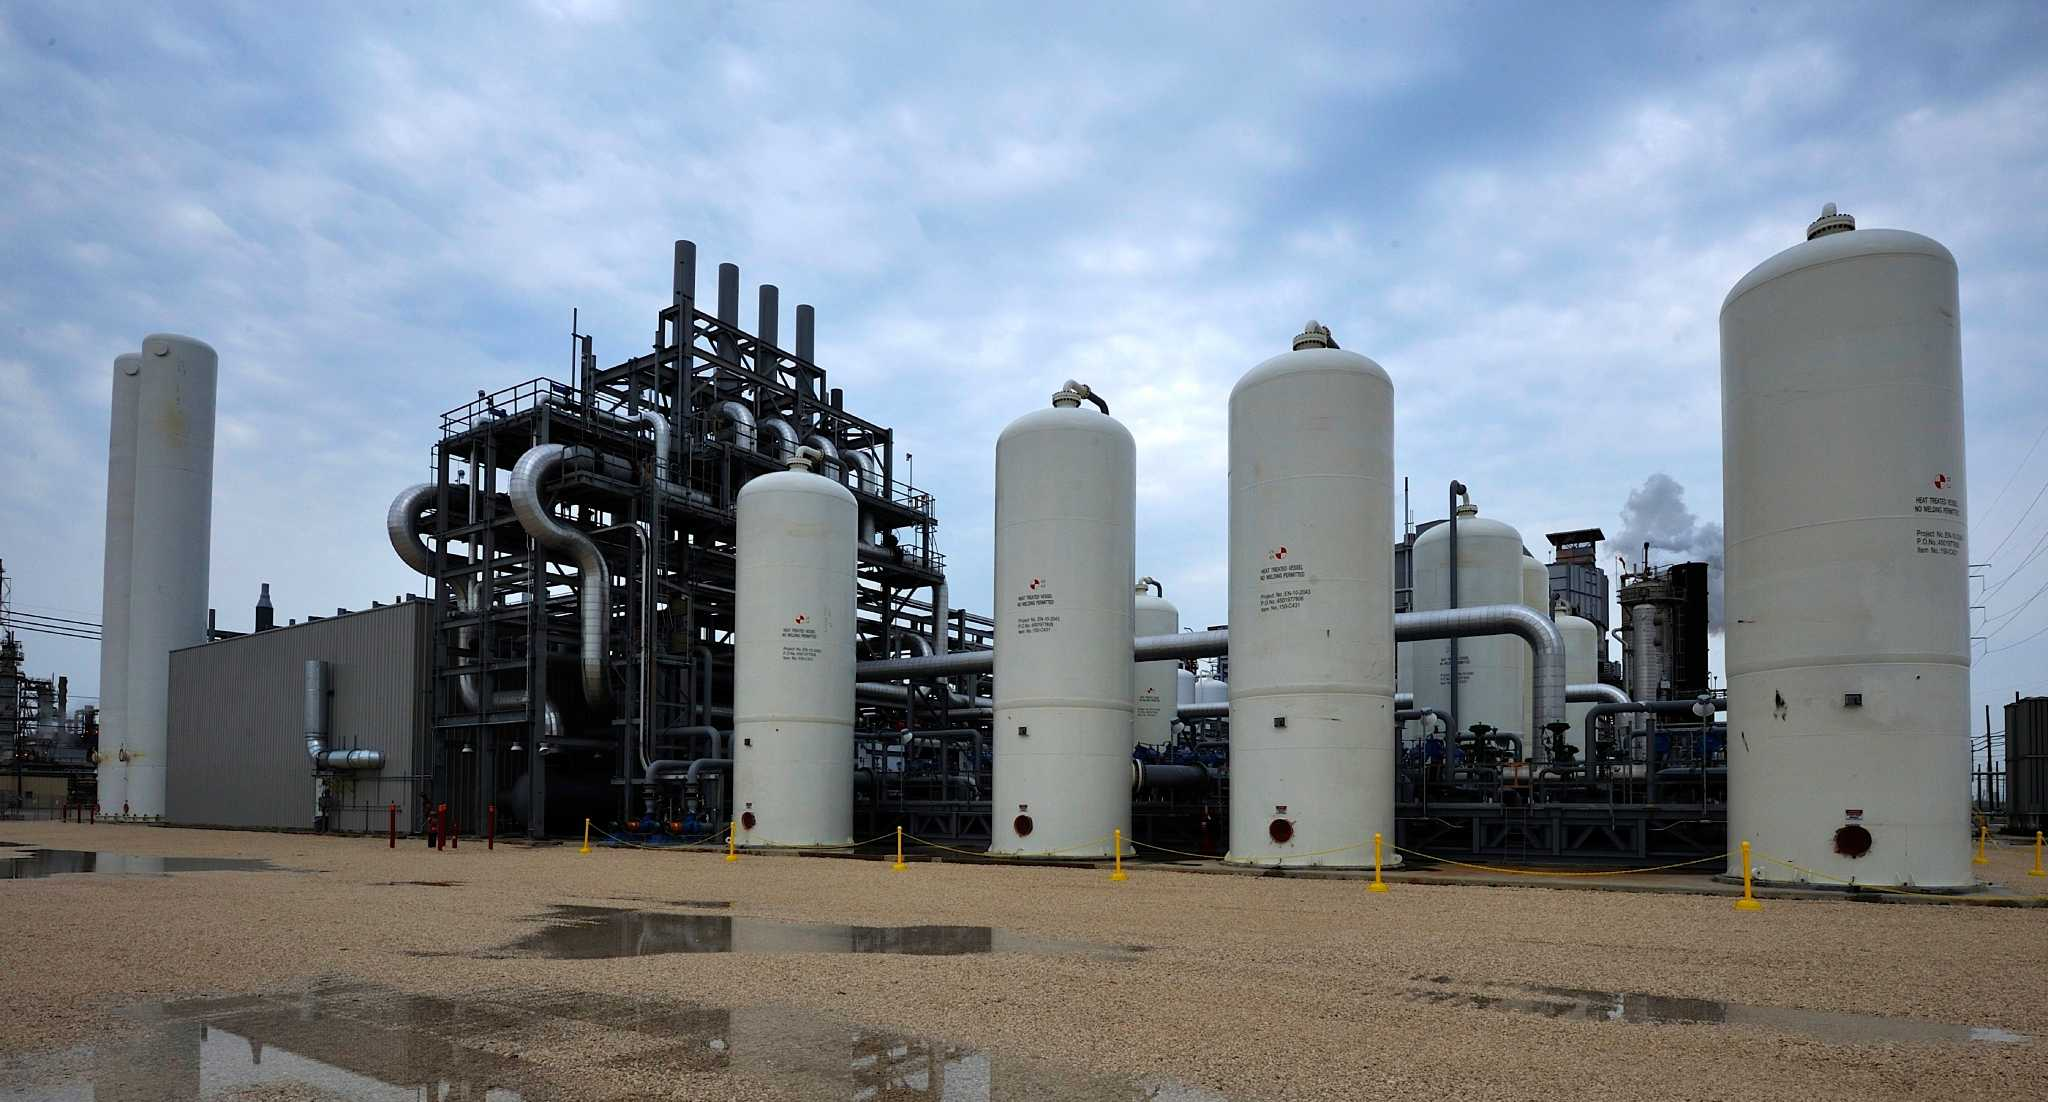 In a $400 million demonstration project supported by federal funding, this Air Products facility captures carbon dioxide emitted at Valero Energy s refinery in Port Arthur and pipes the gas to help push oil out of an aging field south of Houston. (Air Products photo received 6/5/2014)